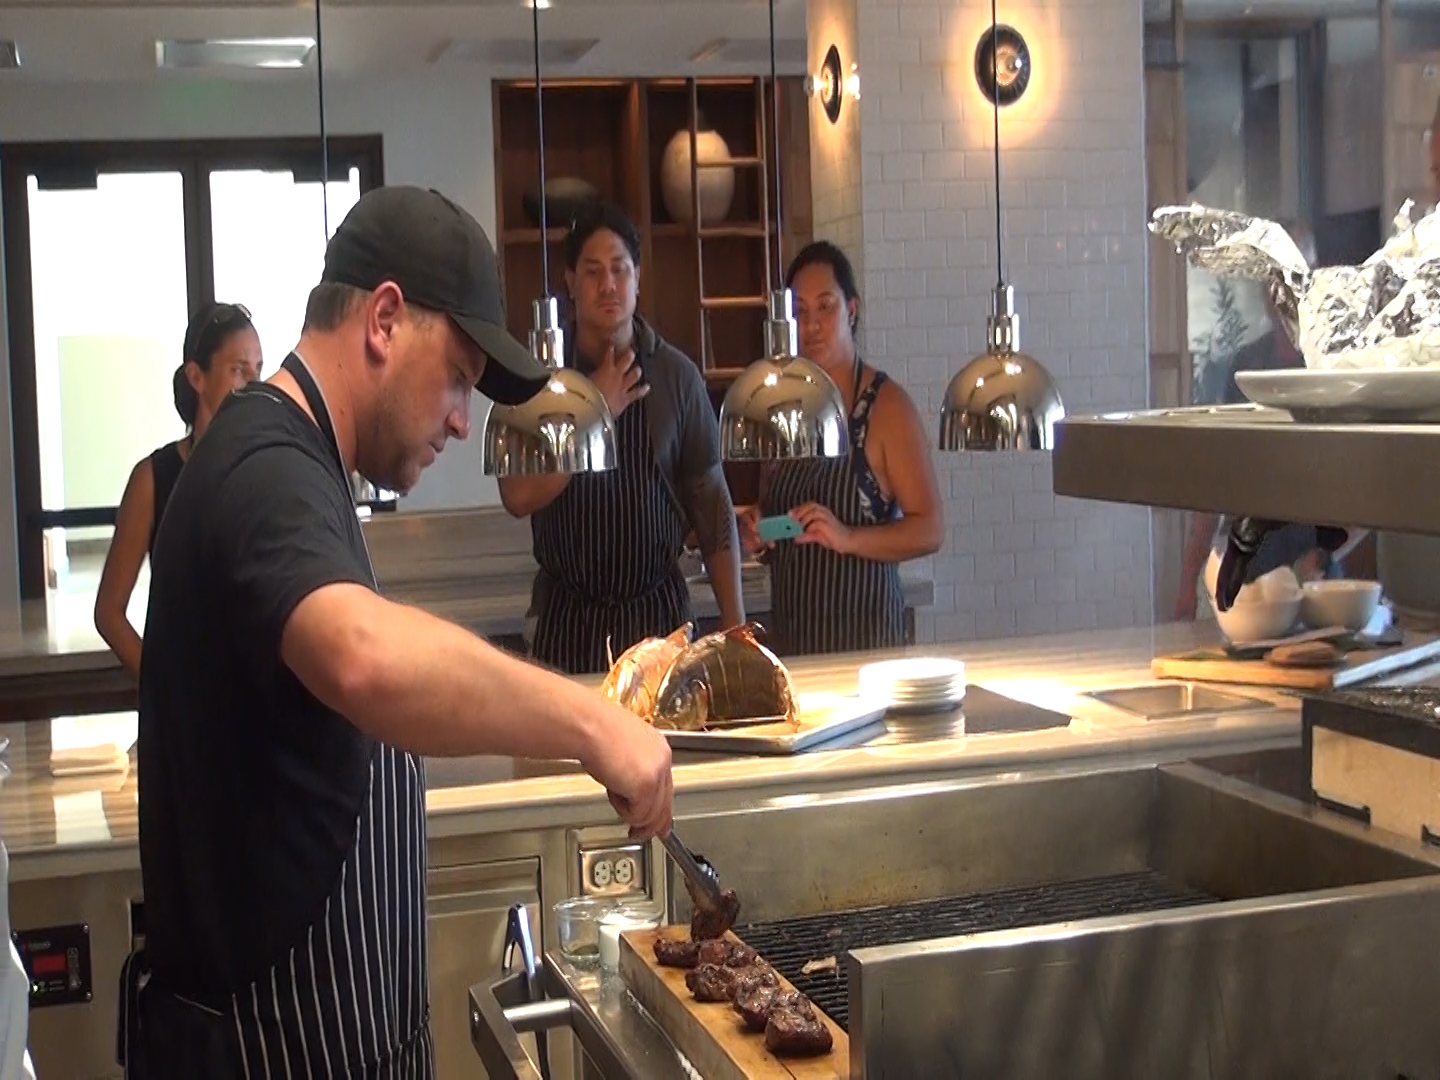 Kahului Ranks in Top 10 Midsize Cities For Chefs